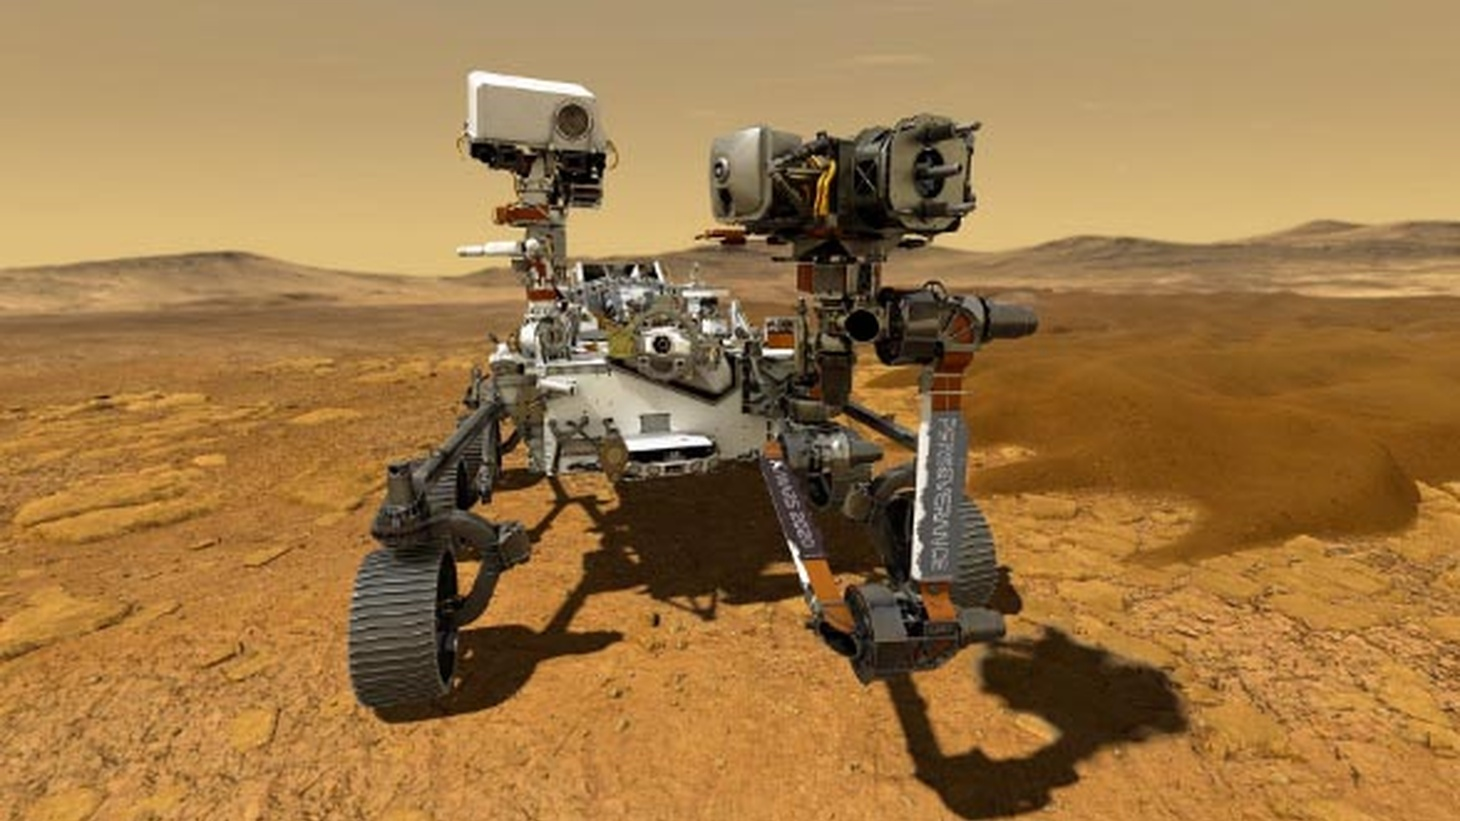 An illustration depicting NASA's Perseverance rover on Mars. Perseverance is expected to land at Mars' Jezero Crater on Feb. 18, 2021.